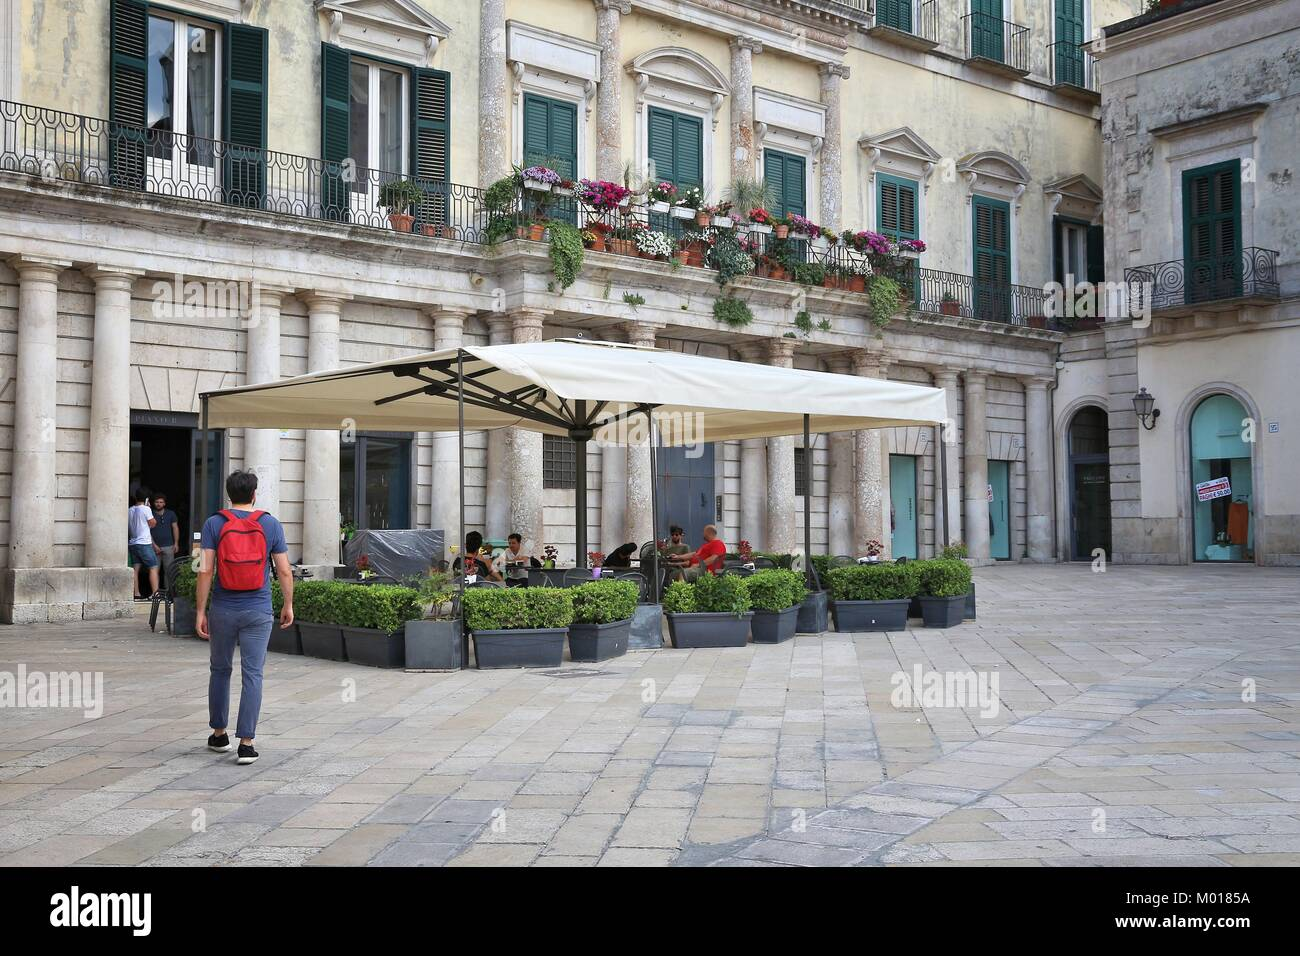 Altamura Italy Stock Photos & Altamura Italy Stock Images - Alamy